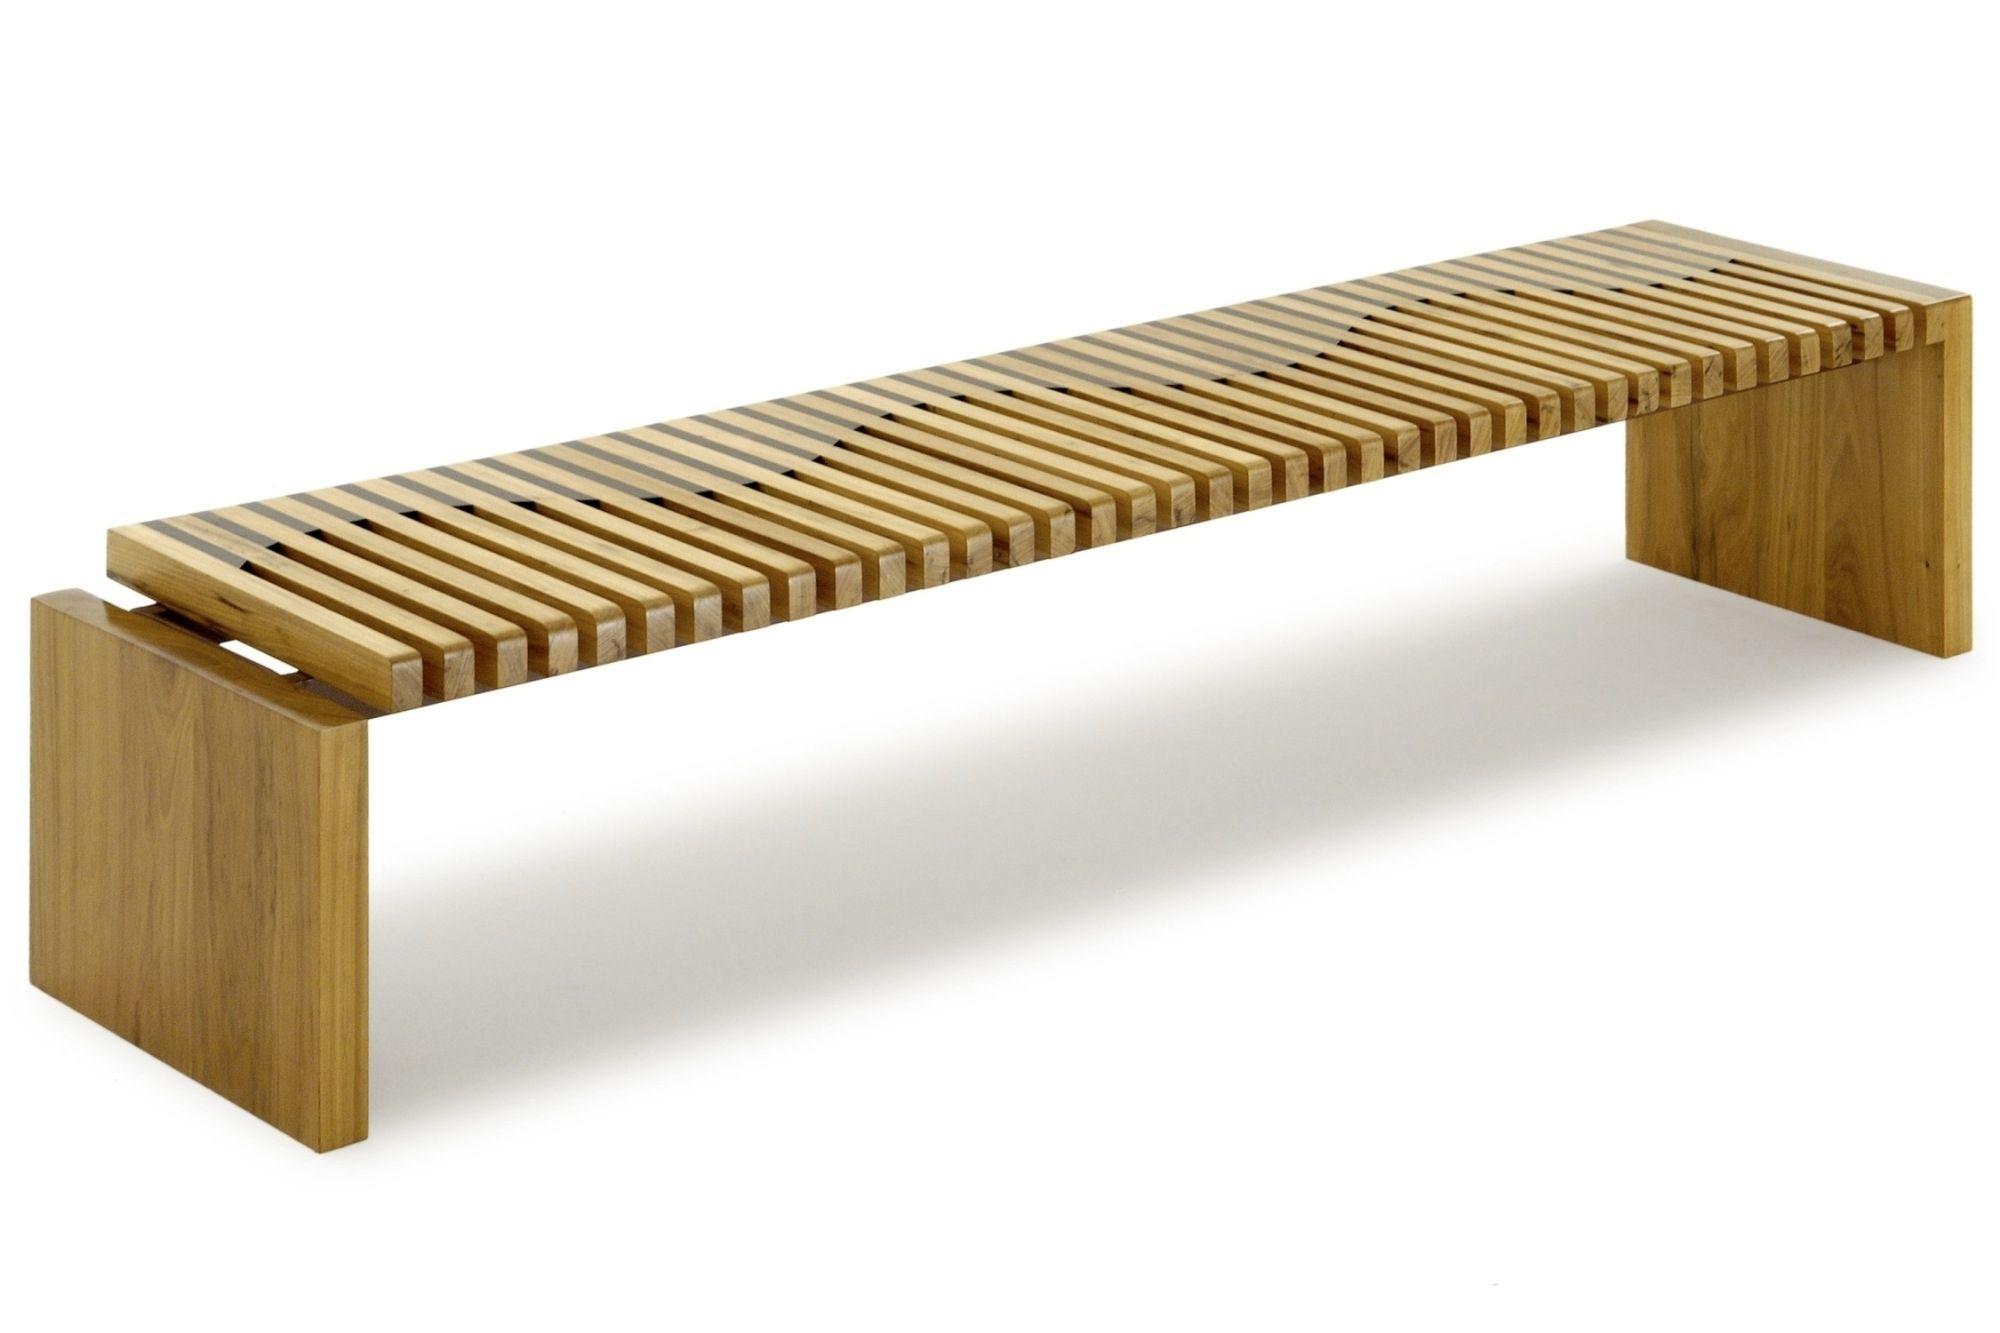 contemporary bench  wooden  recovered materials  onda  rotsen  - contemporary bench  wooden  recovered materials  onda